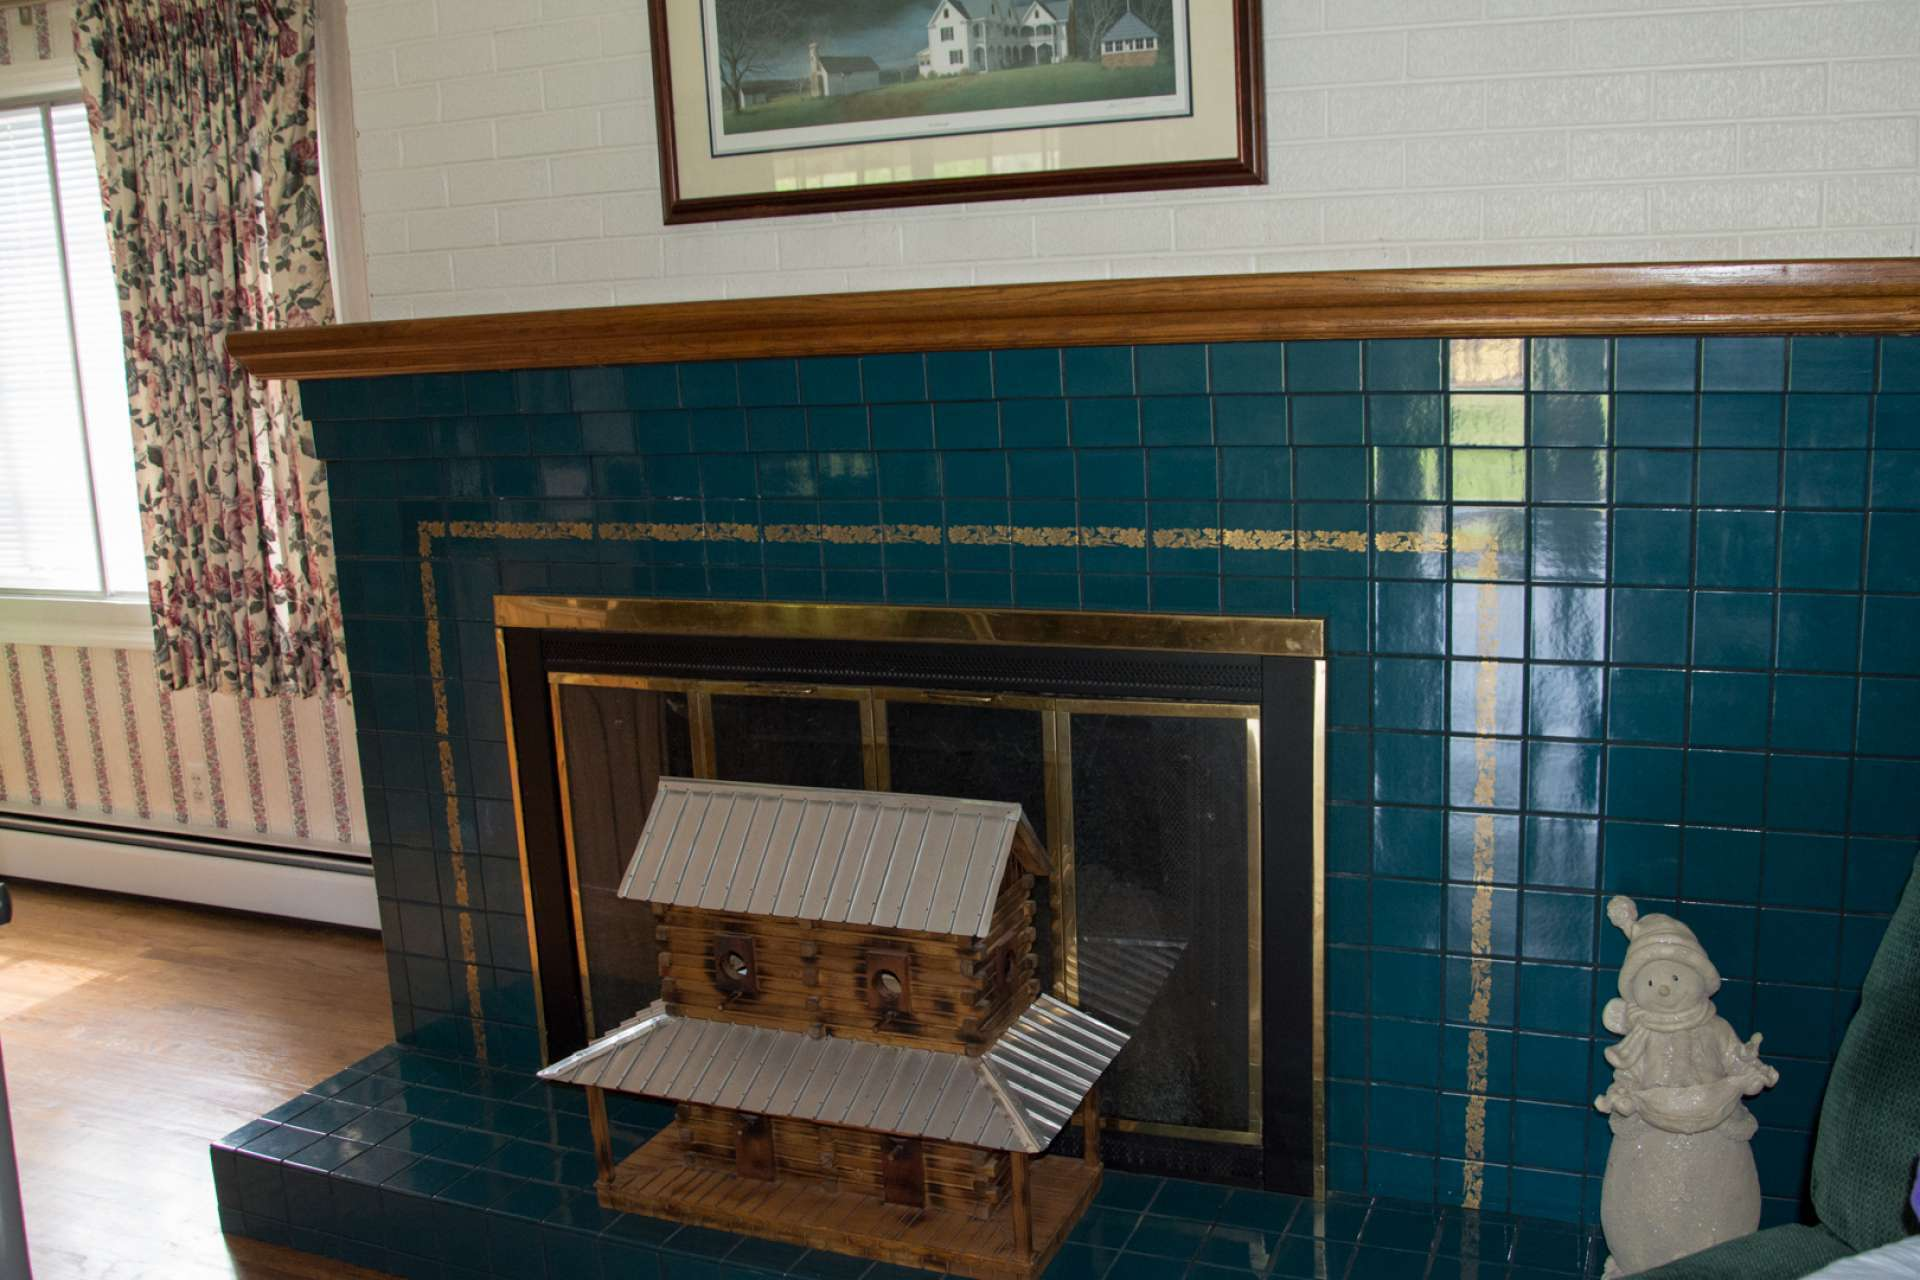 The fireplace has gas logs (no tank) installed but can easily be returned to wood burning.